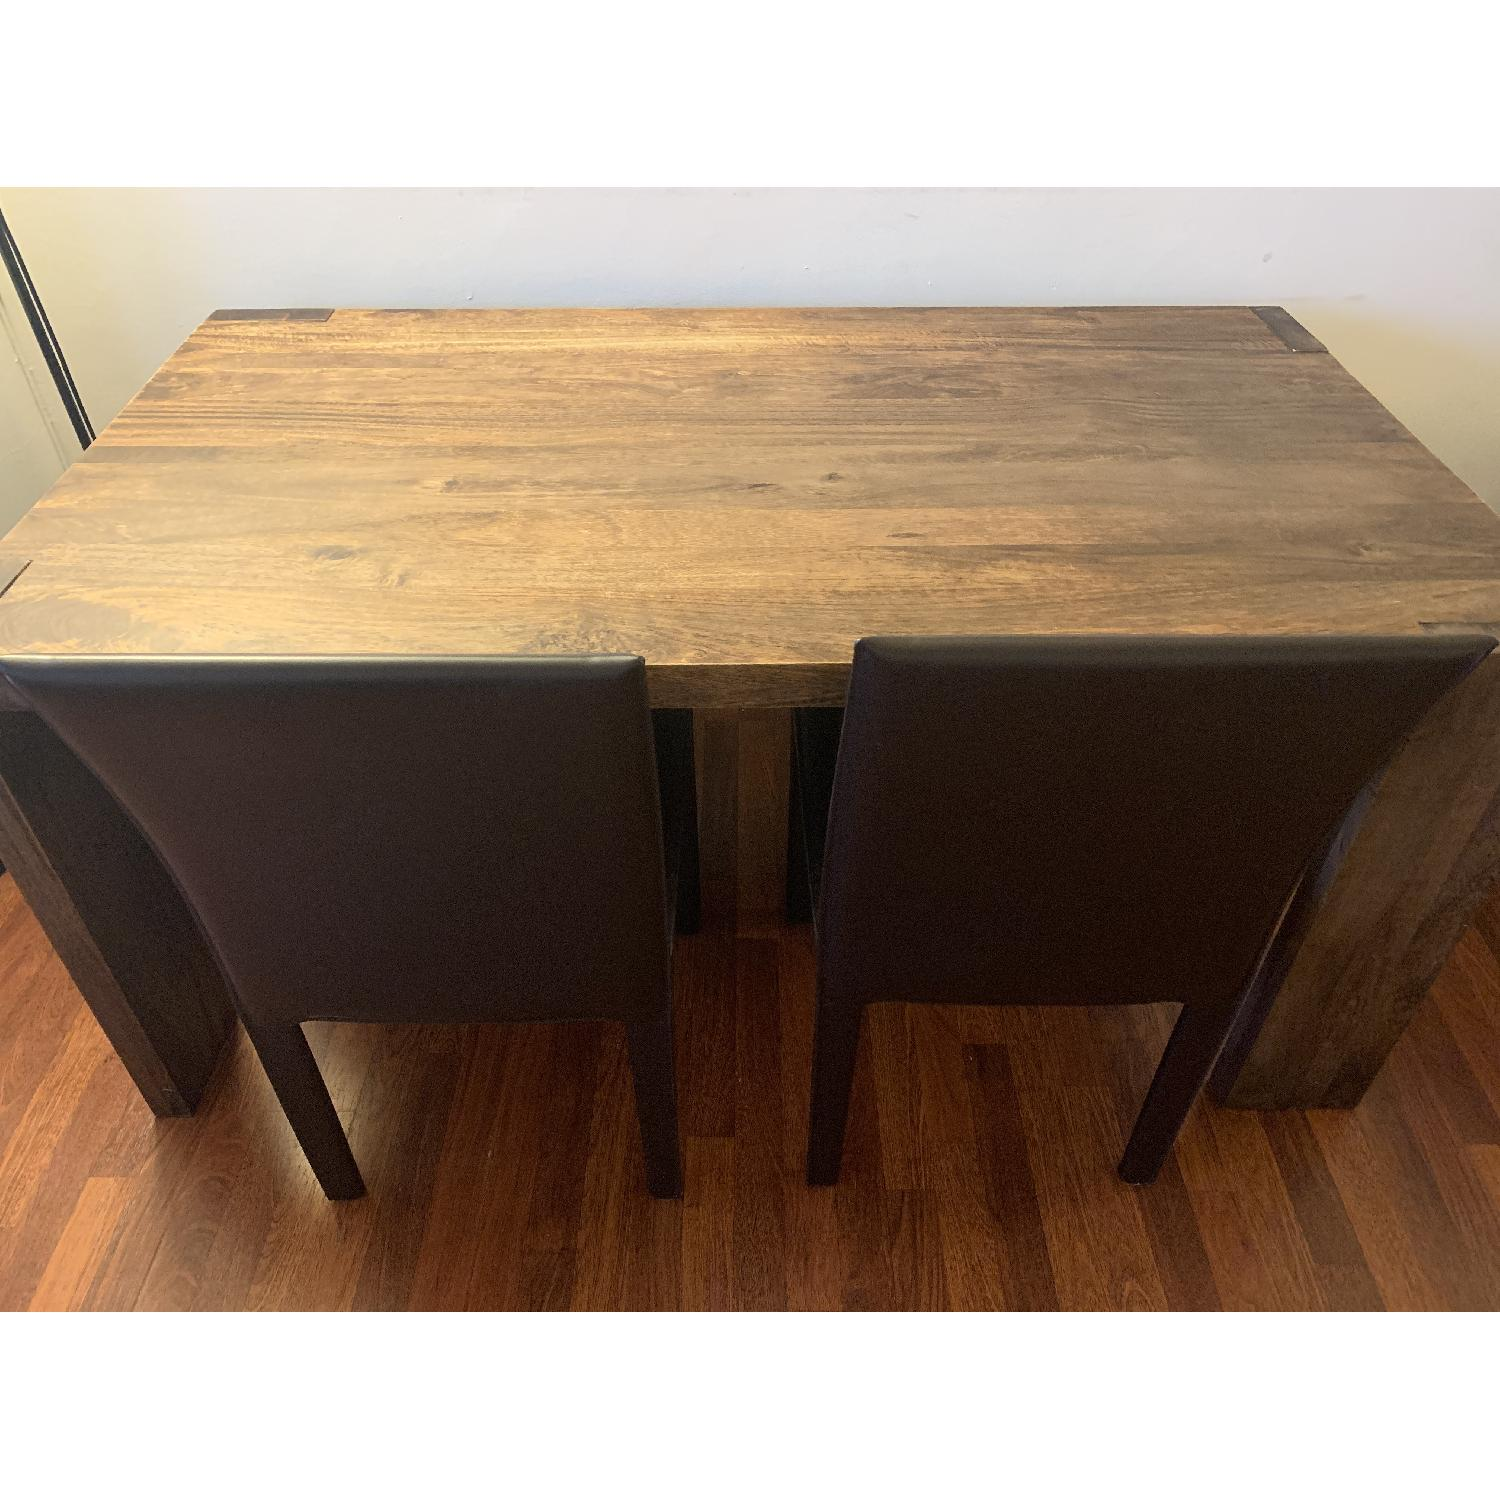 Crate & Barrel Big Sur Table w/ 1 Bench + 2 Leather Chairs-3